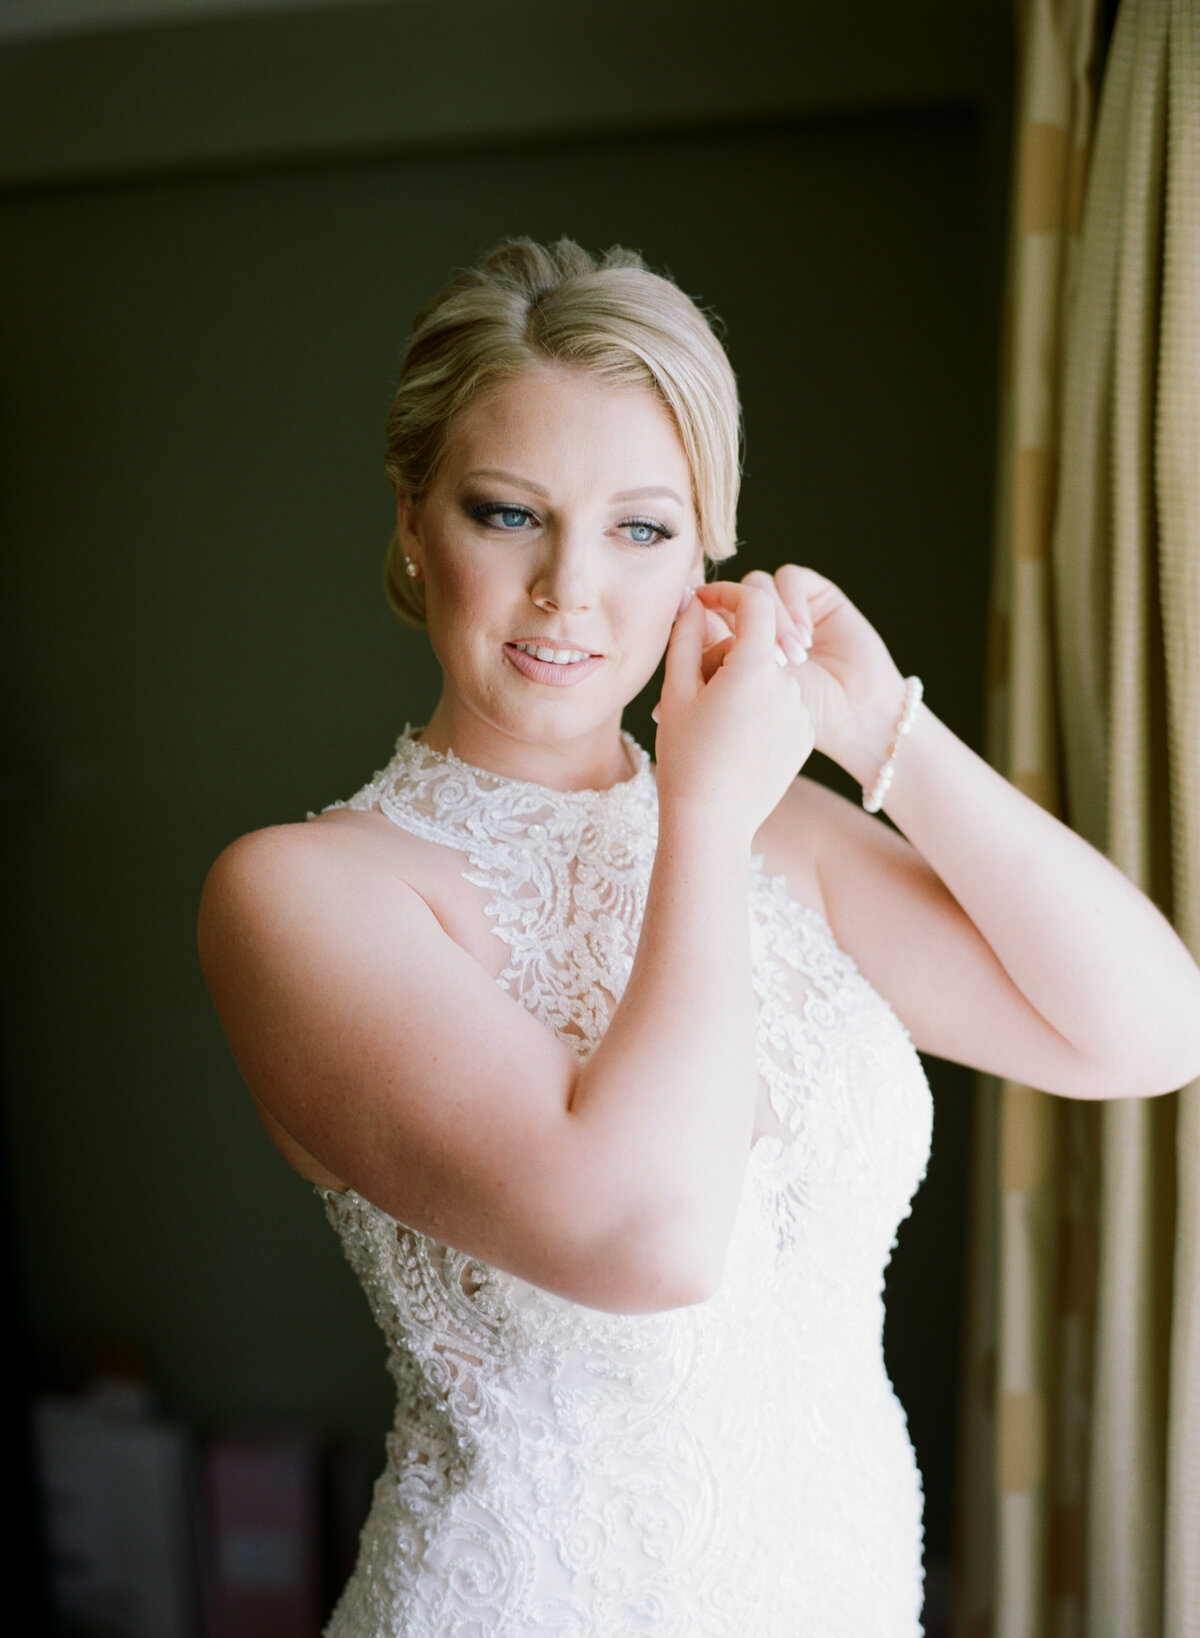 Bridal portrait shot, getting ready on wedding day